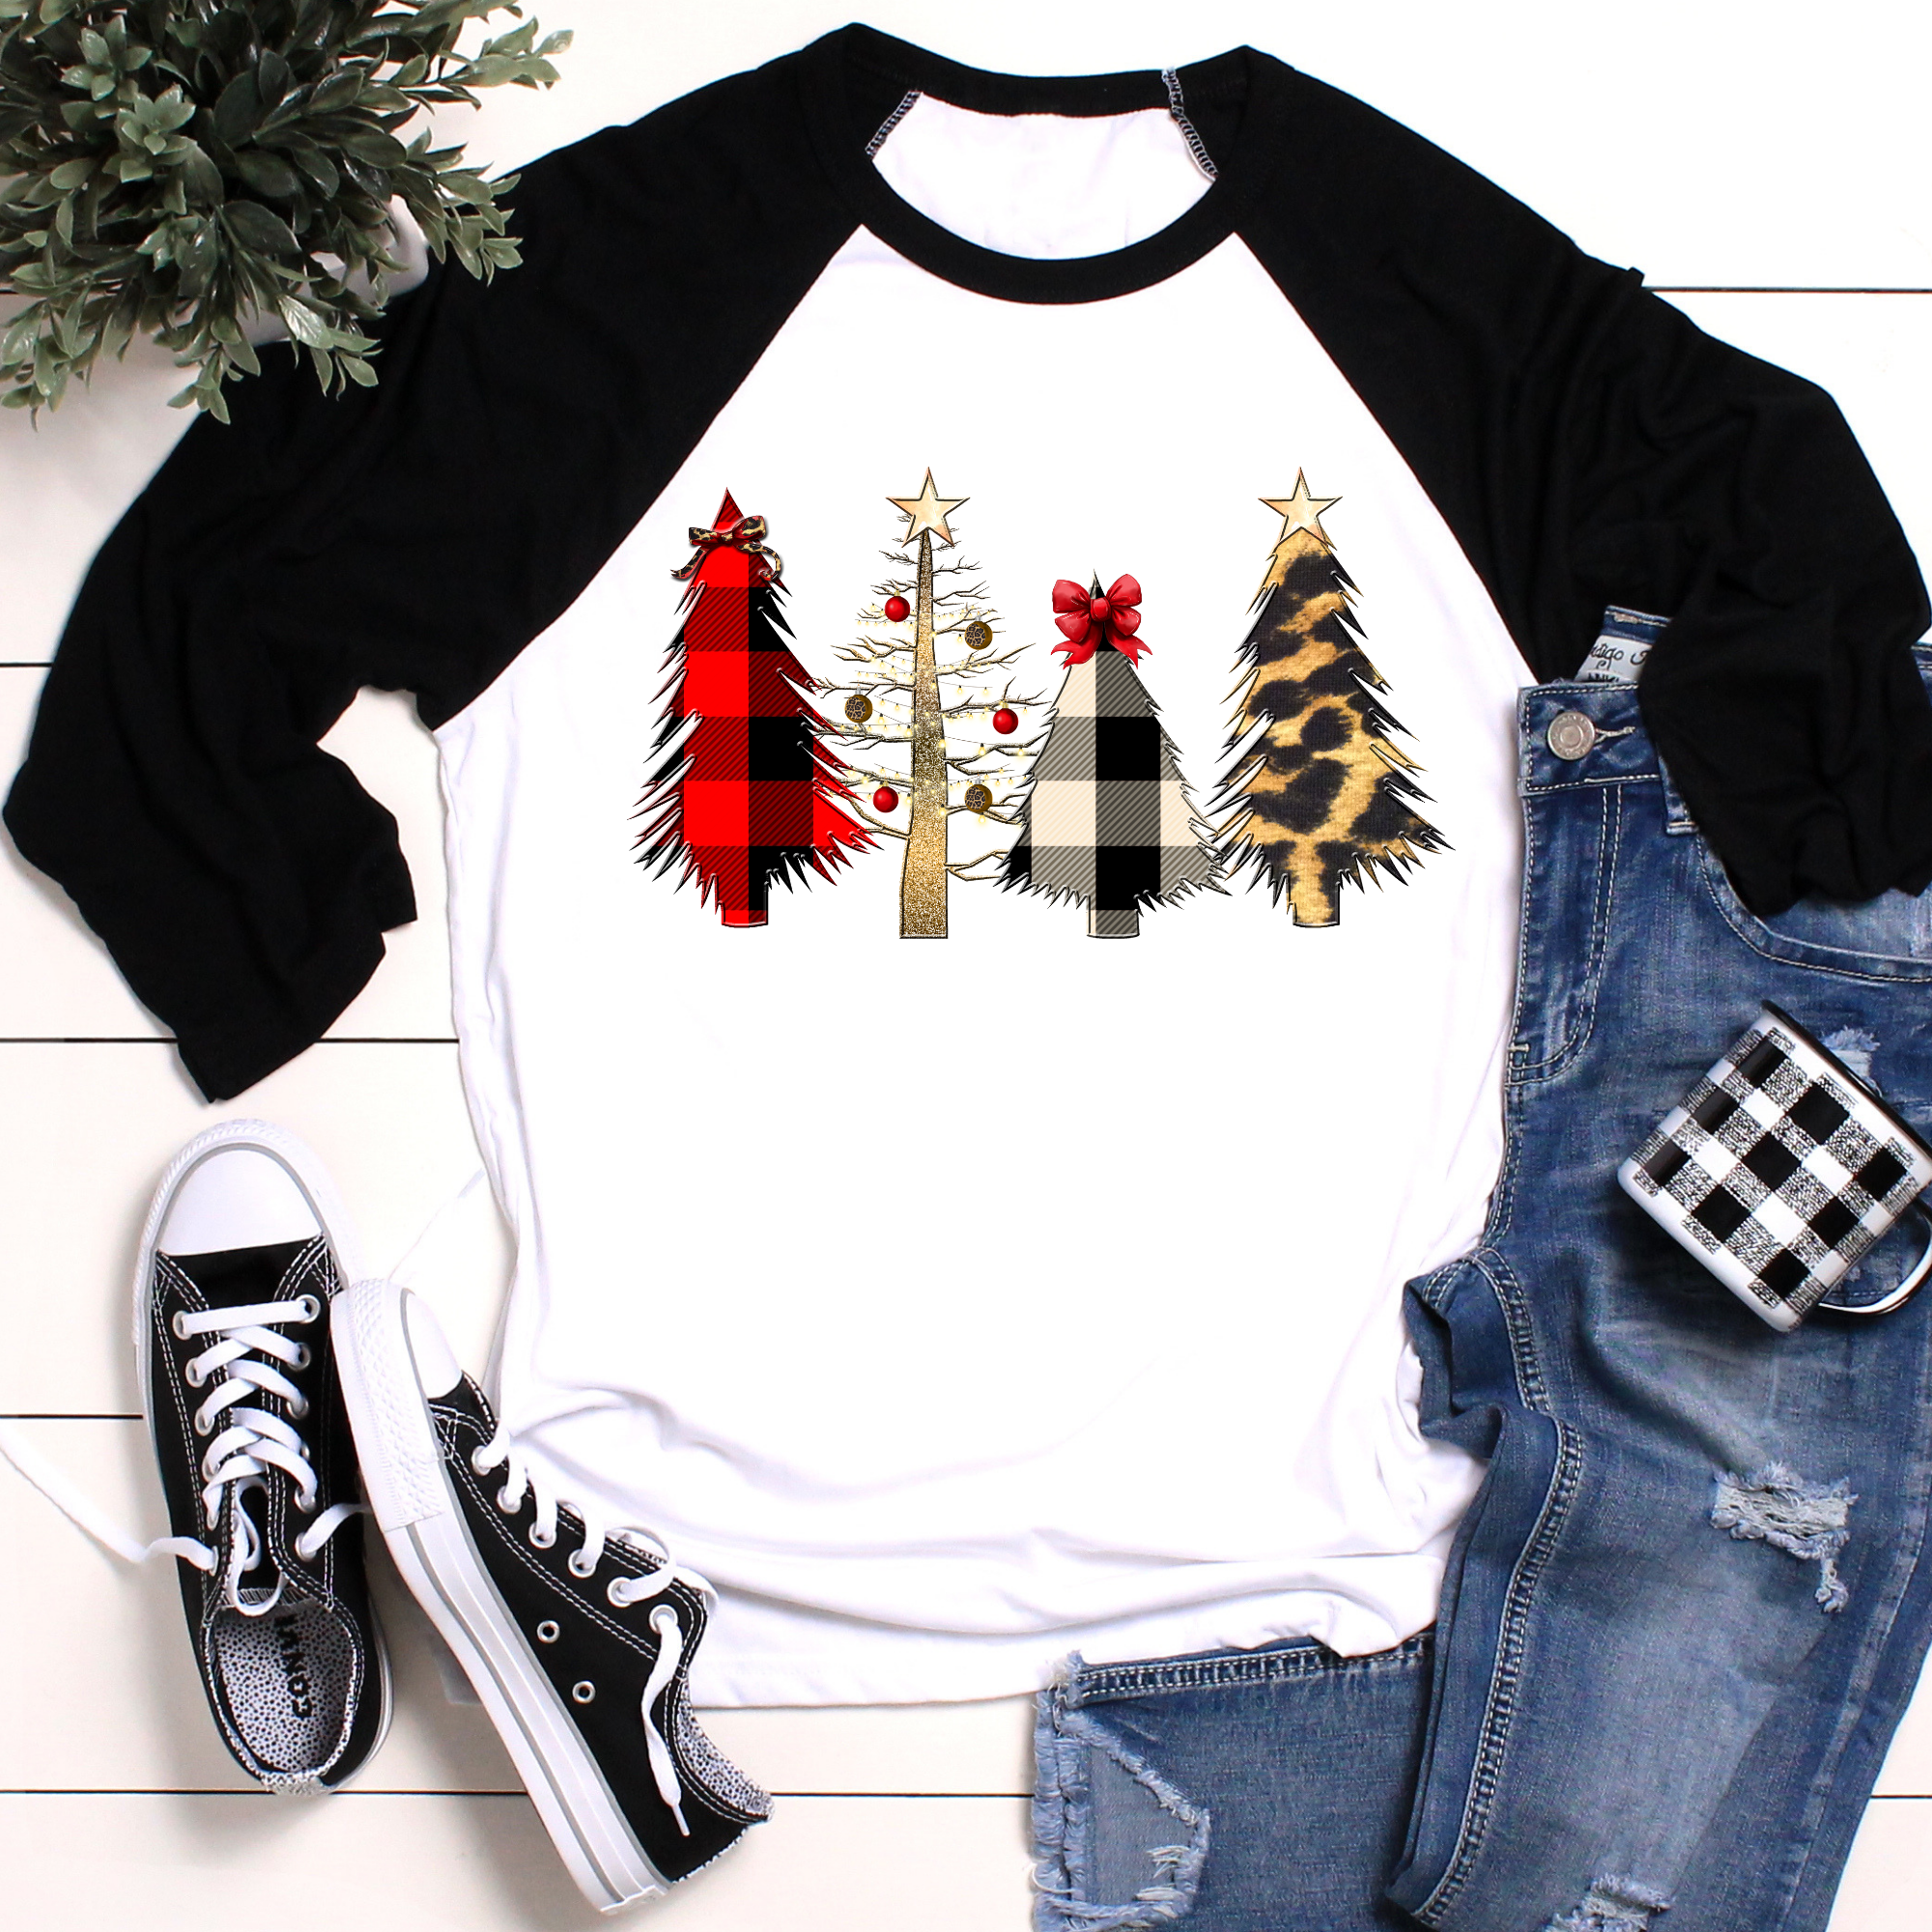 Merry Christmas Trees Shirt #inspireuplift explore Pinterest